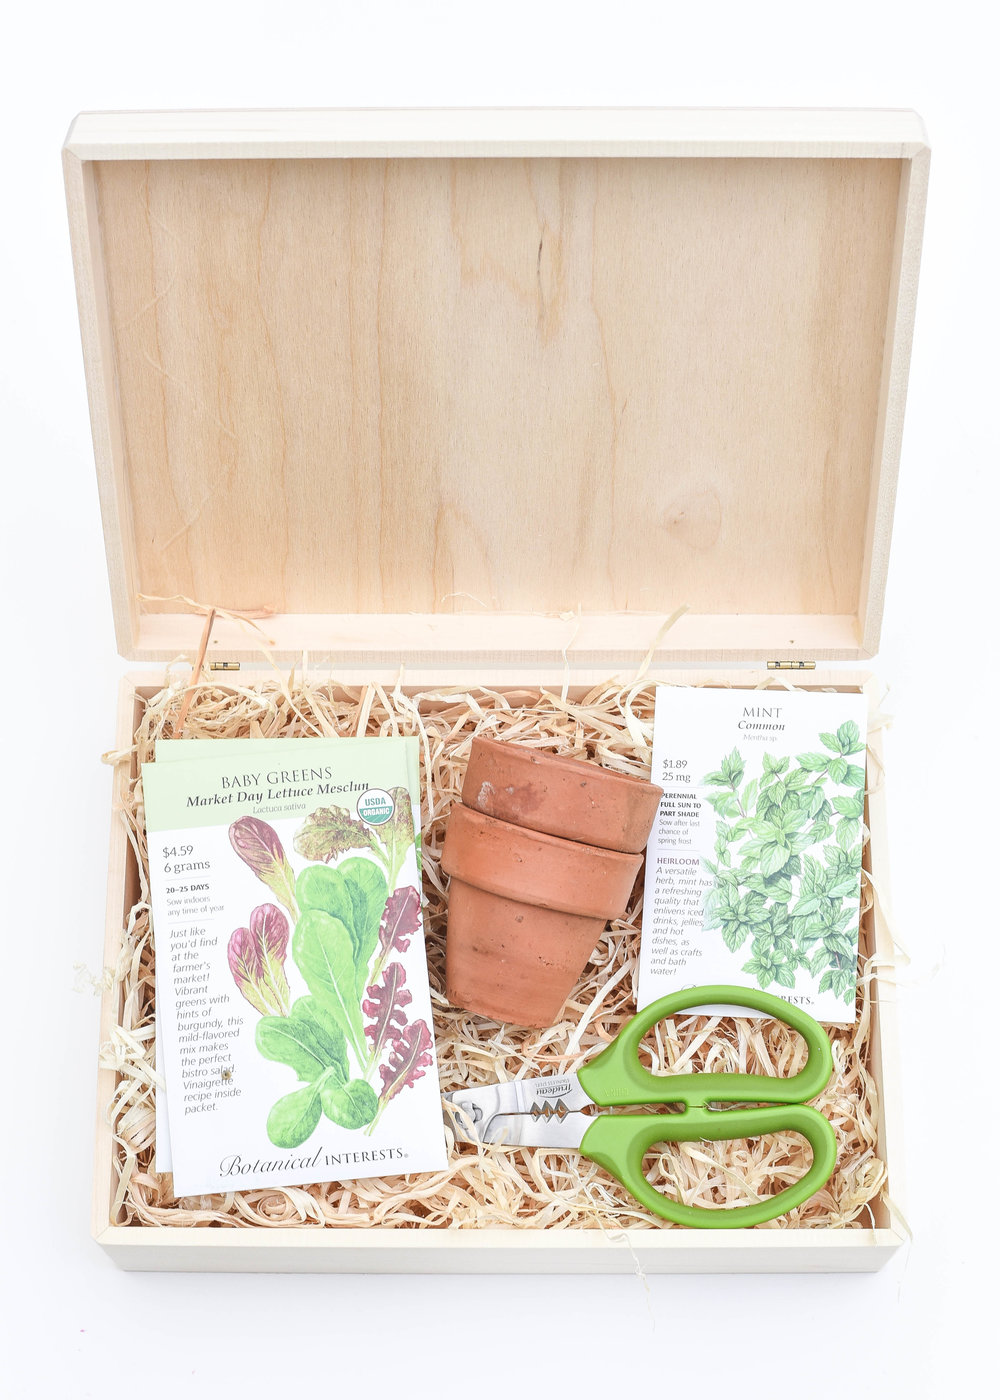 Gardener Gift Set, Herb Garden Gift Guide, Herb Garden Gift Set, For the Chef's Garden, Iron and Twine Gift Guide